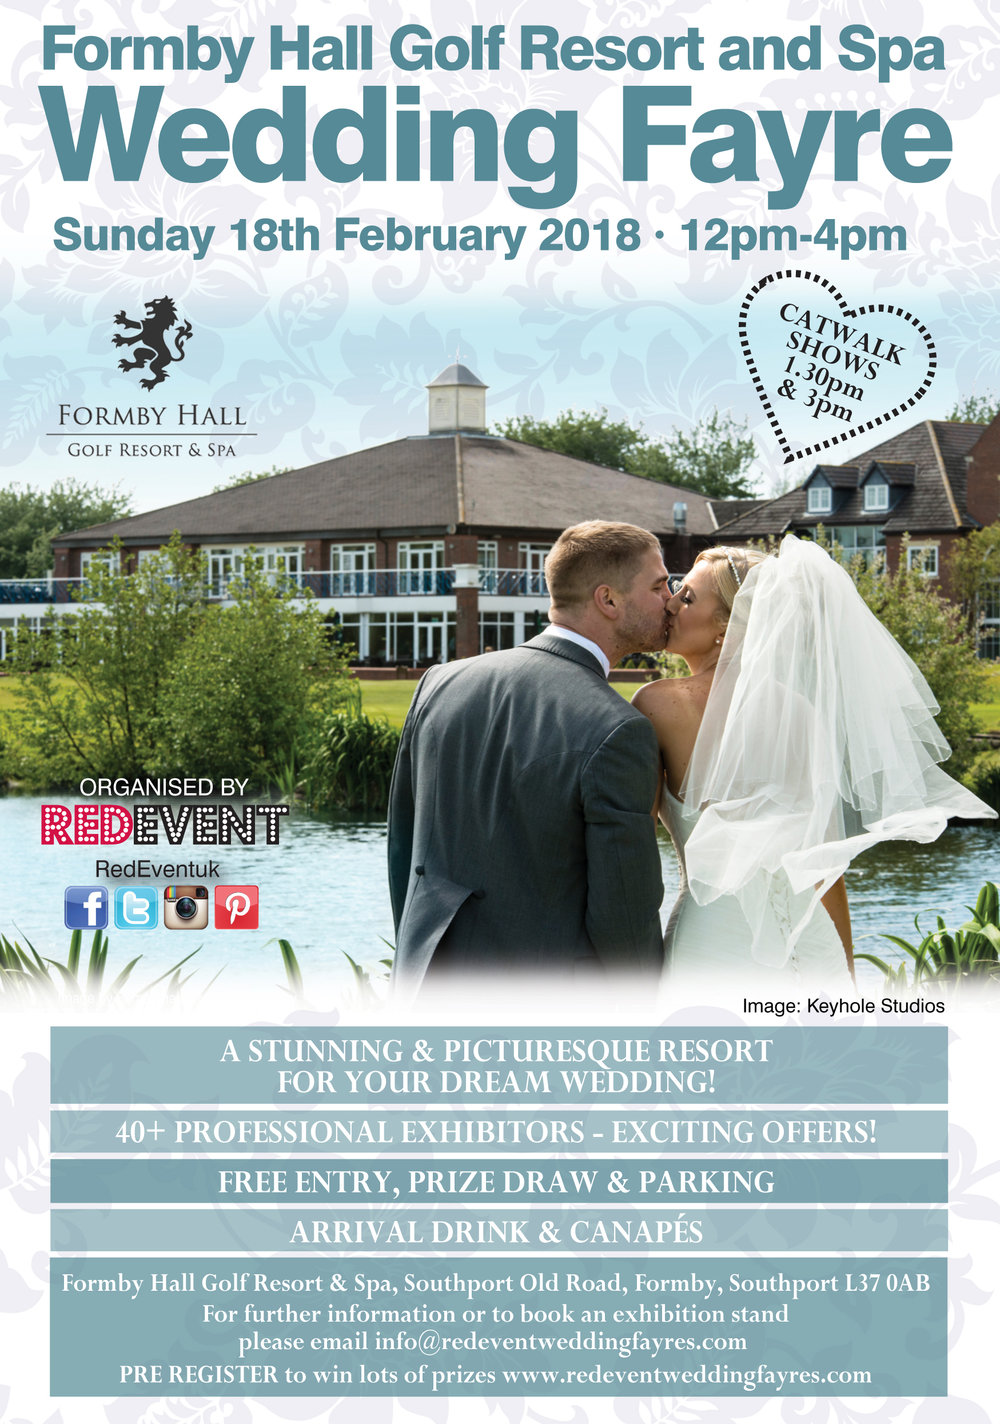 Formby Hall Golf Resort & Spa Liverpool Wedding Fayre Red Event.jpg